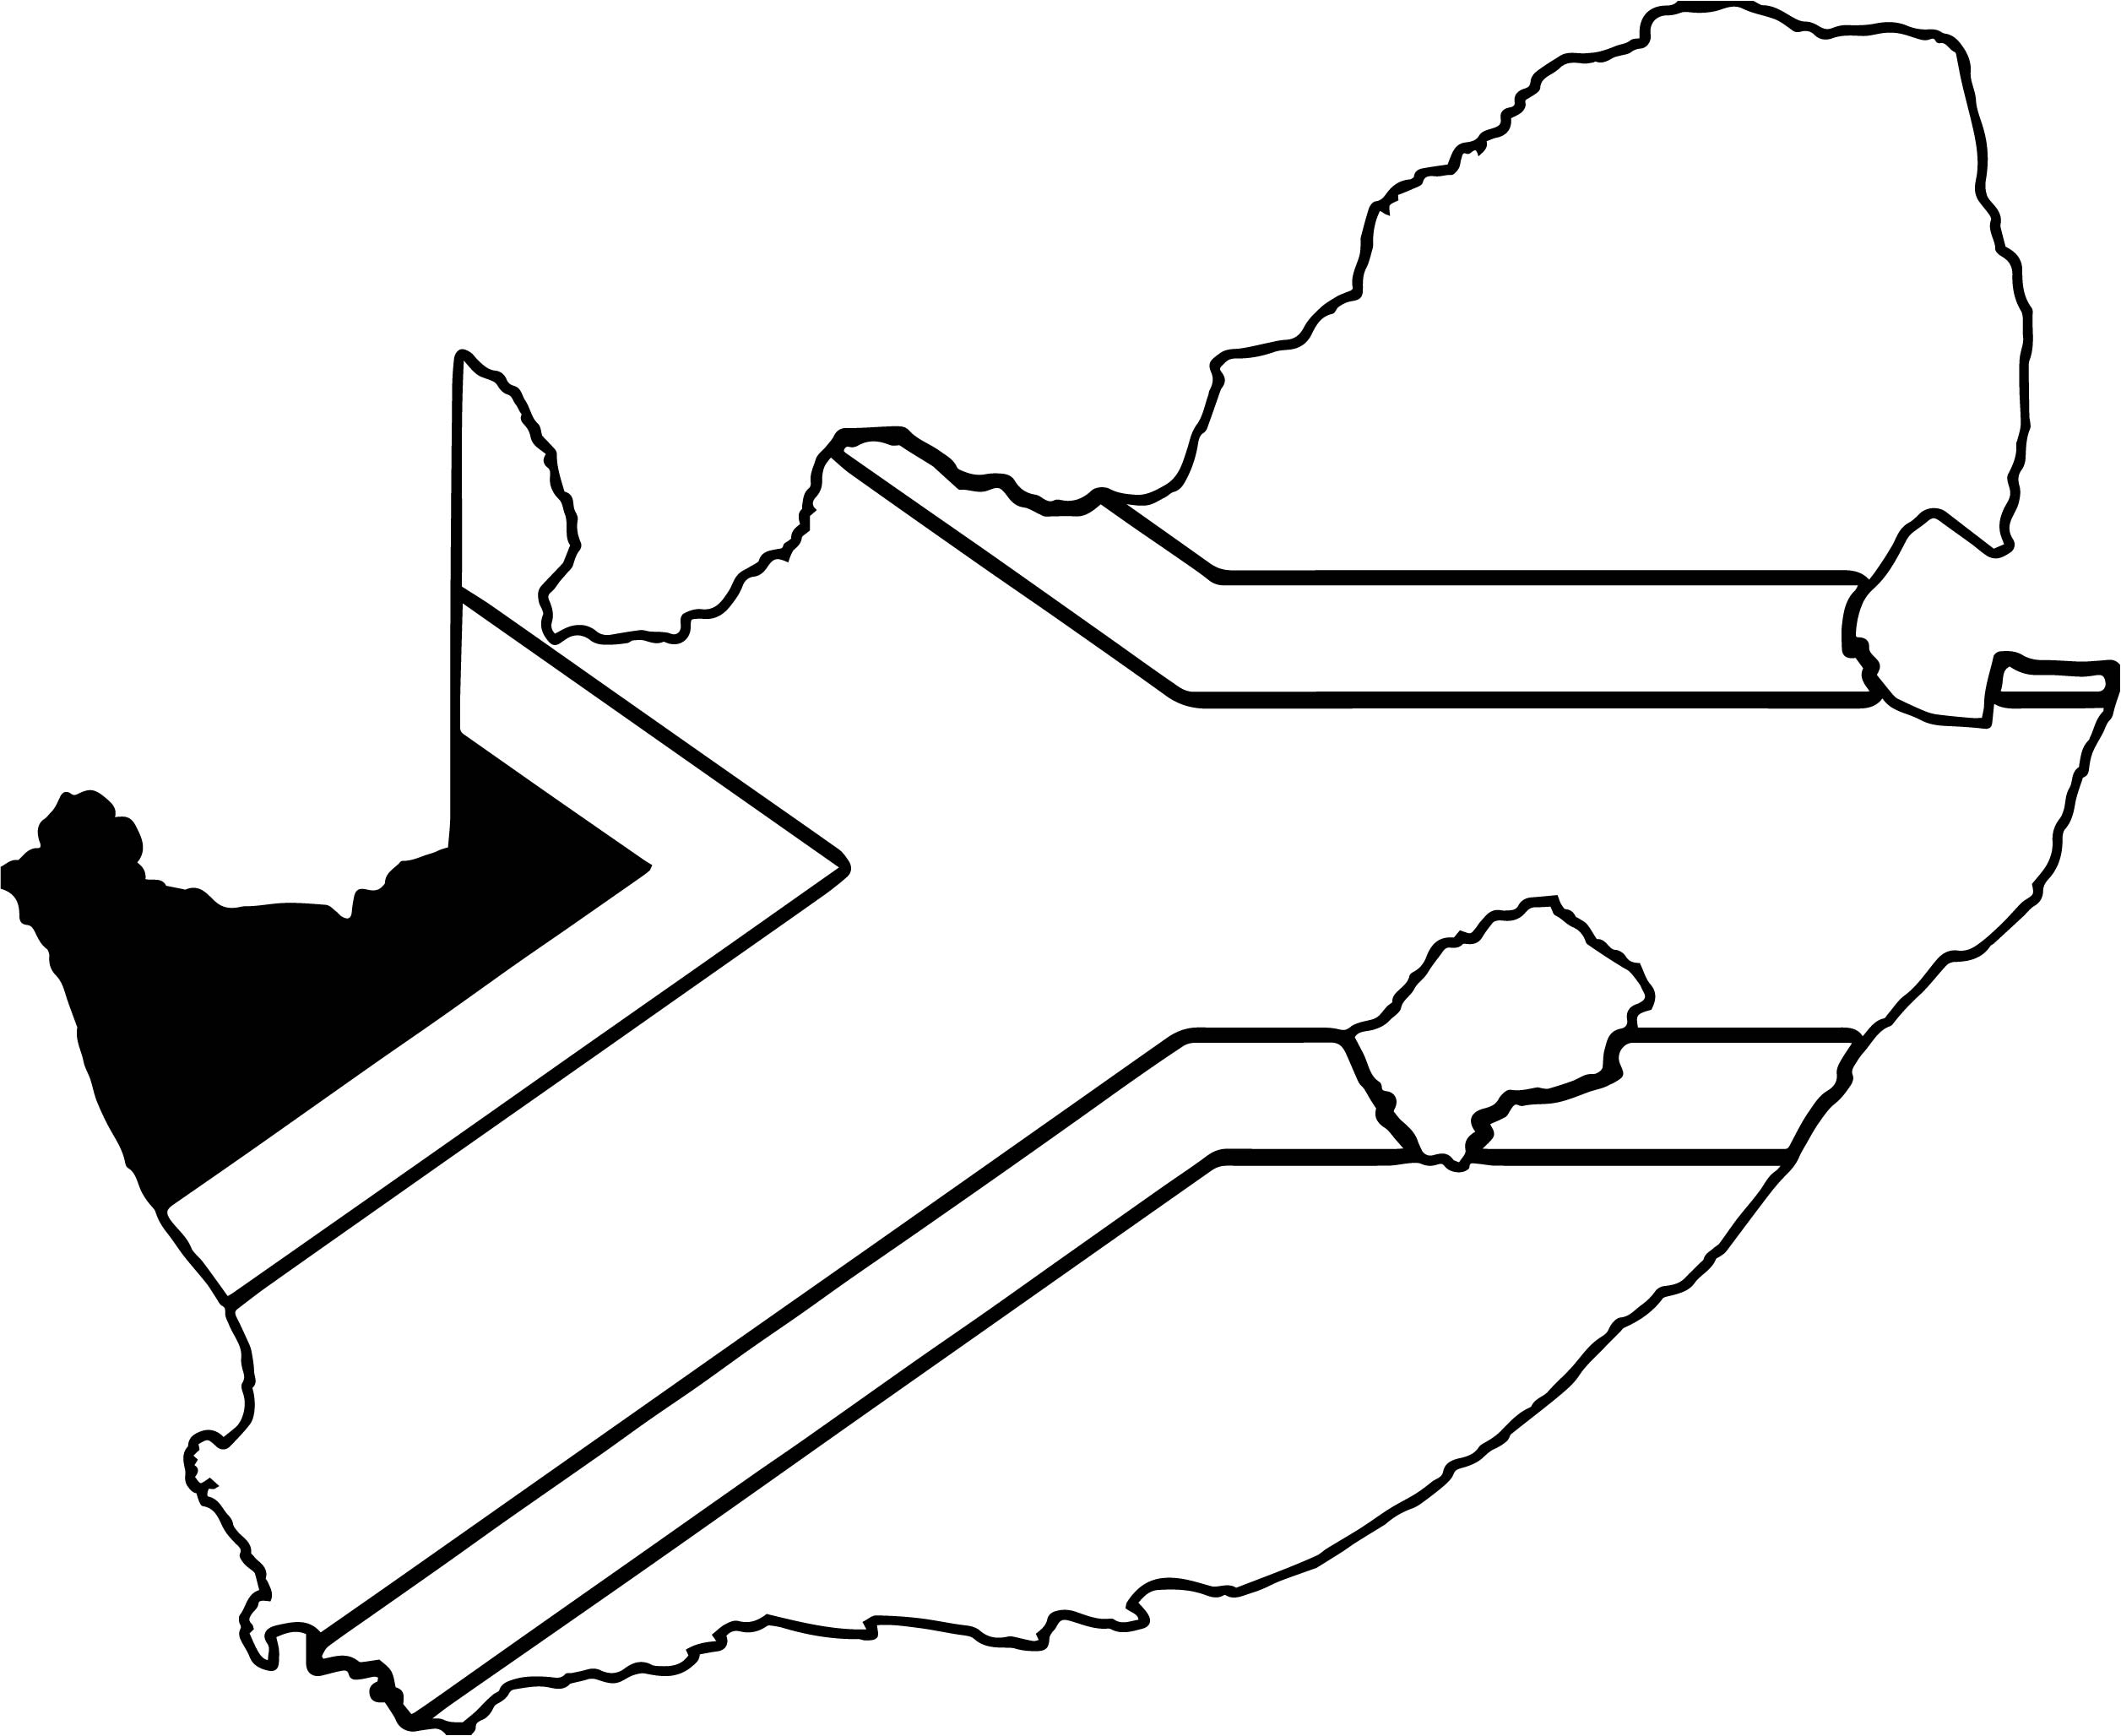 south africa map coloring page wecoloringpage